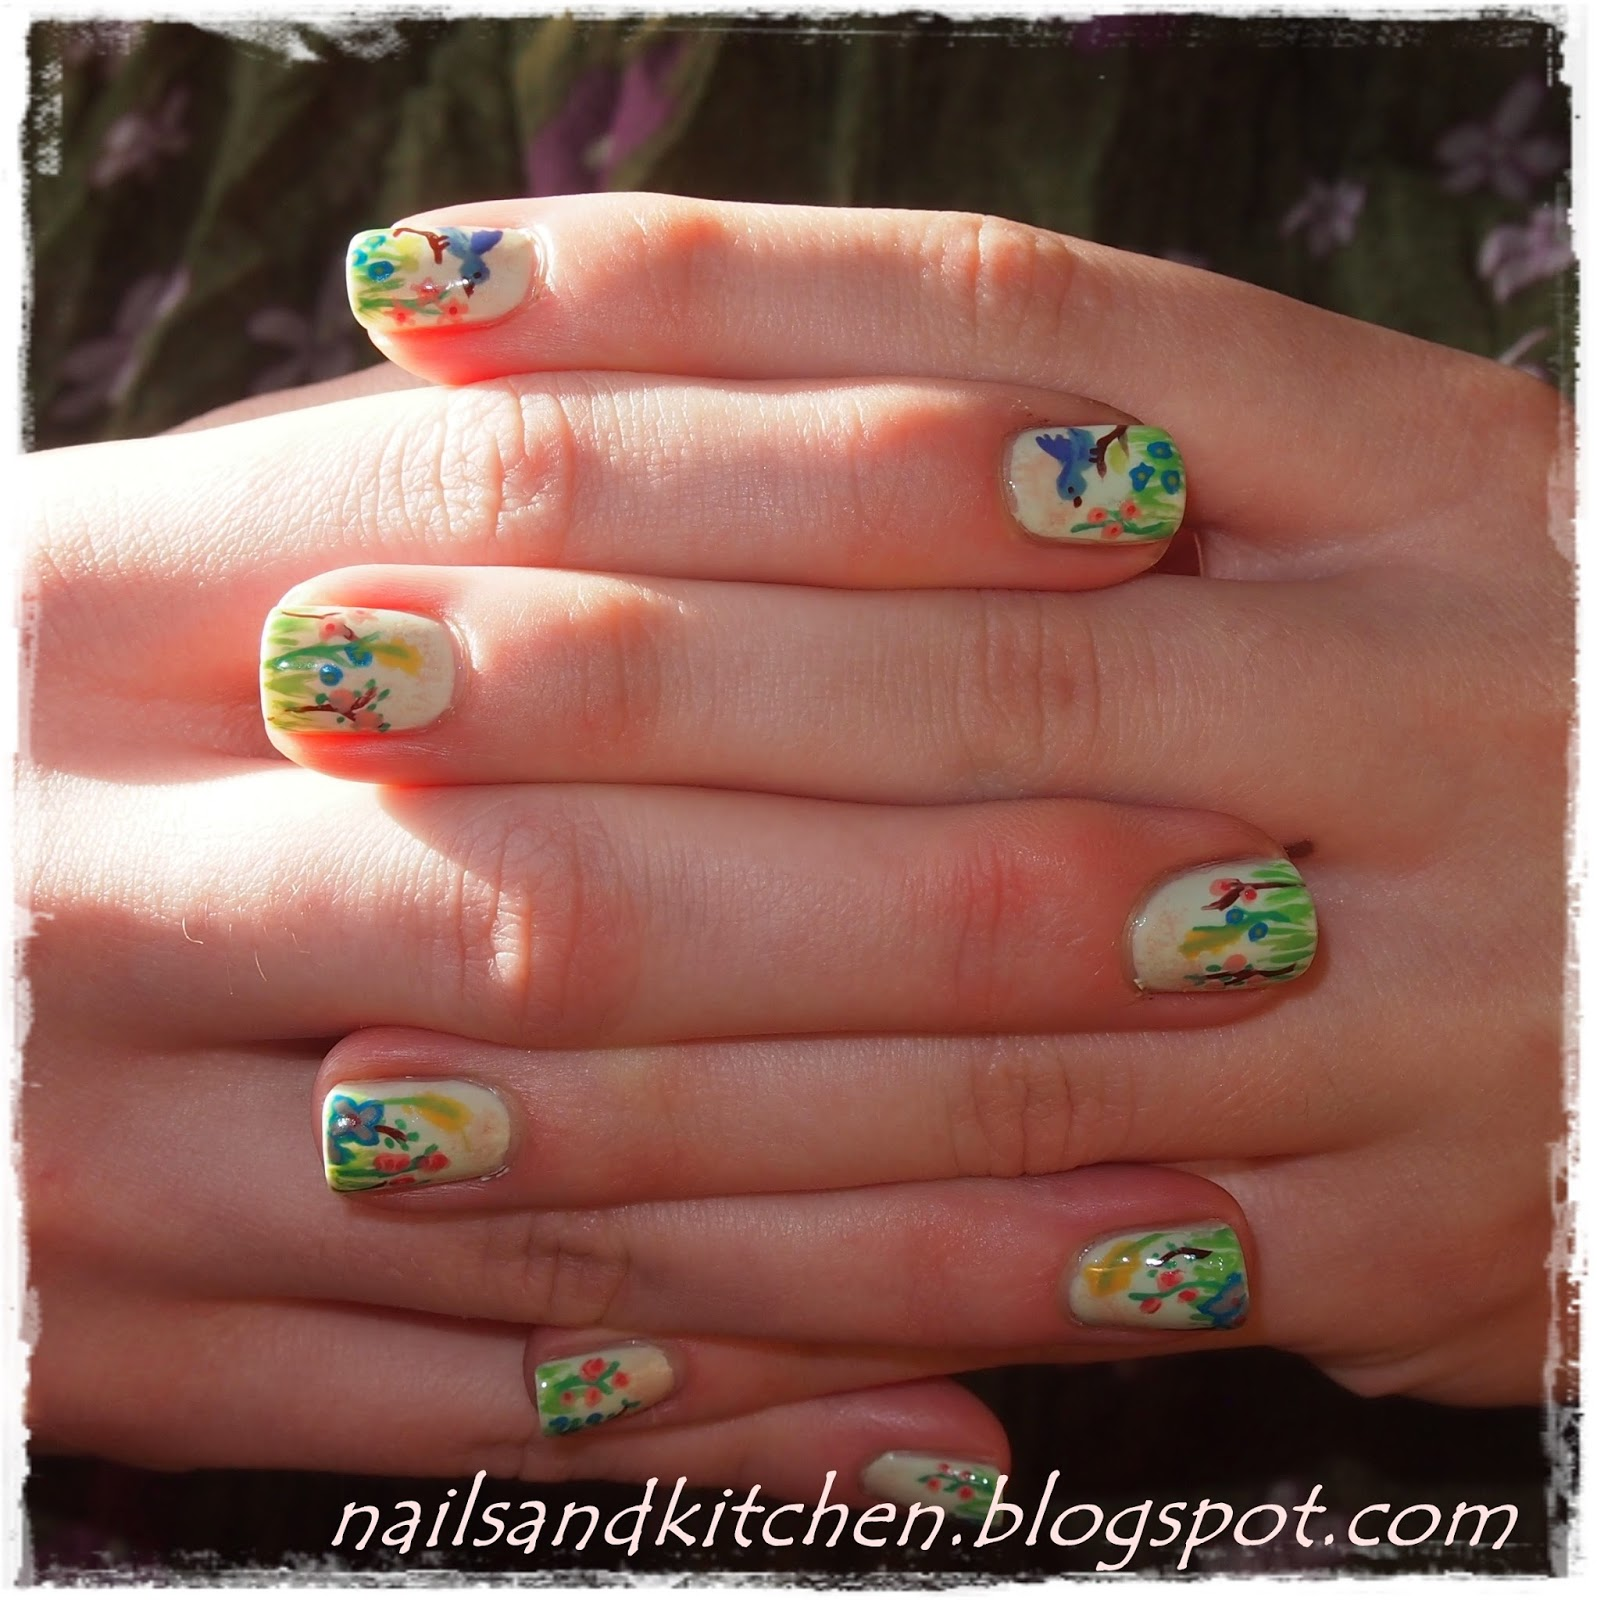 http://nailsandkitchen.blogspot.com/2014/05/wiosna-ach-to-ty.html